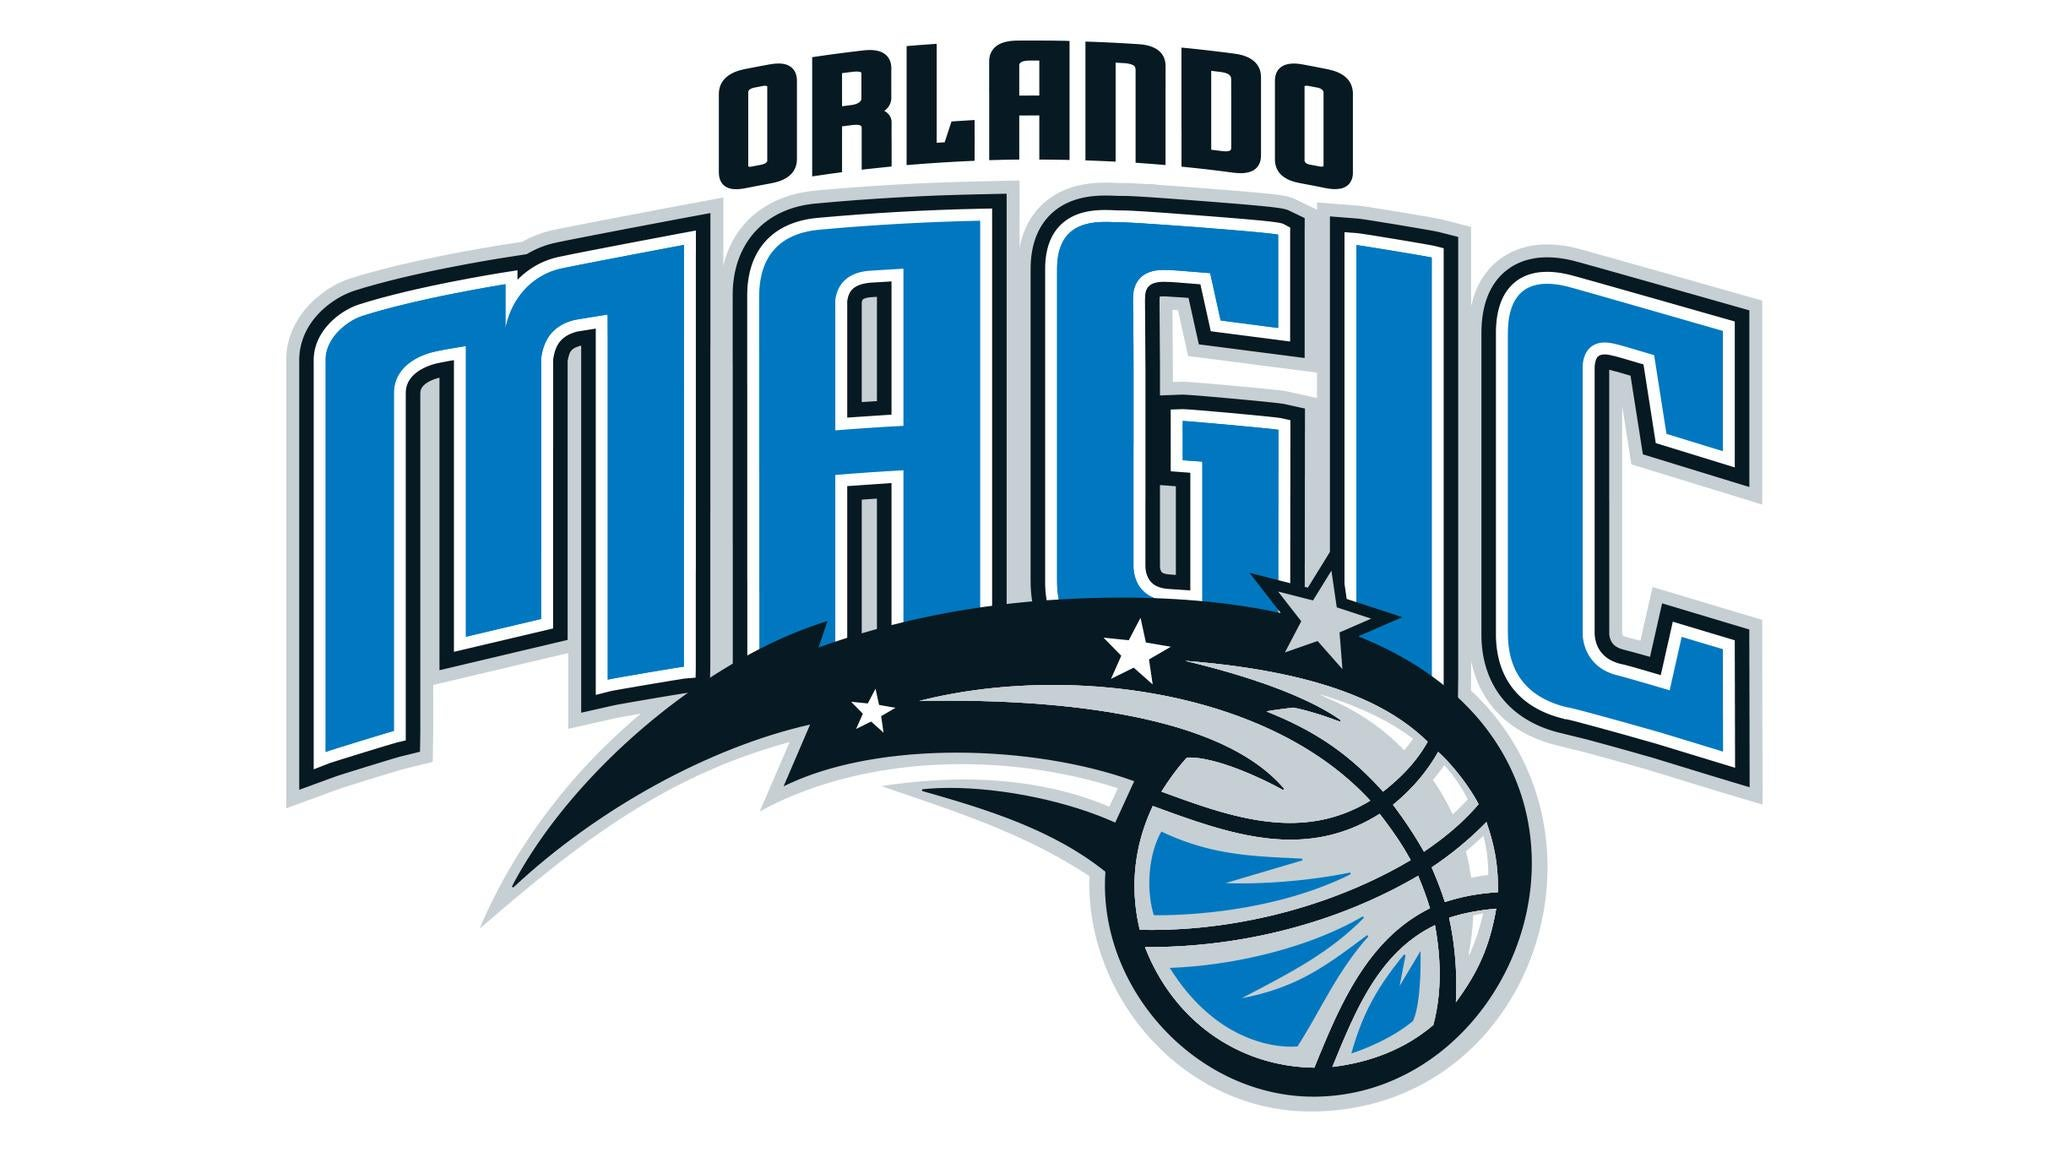 Orlando Magic vs. Chicago Bulls at Amway Center - Orlando, FL 32801